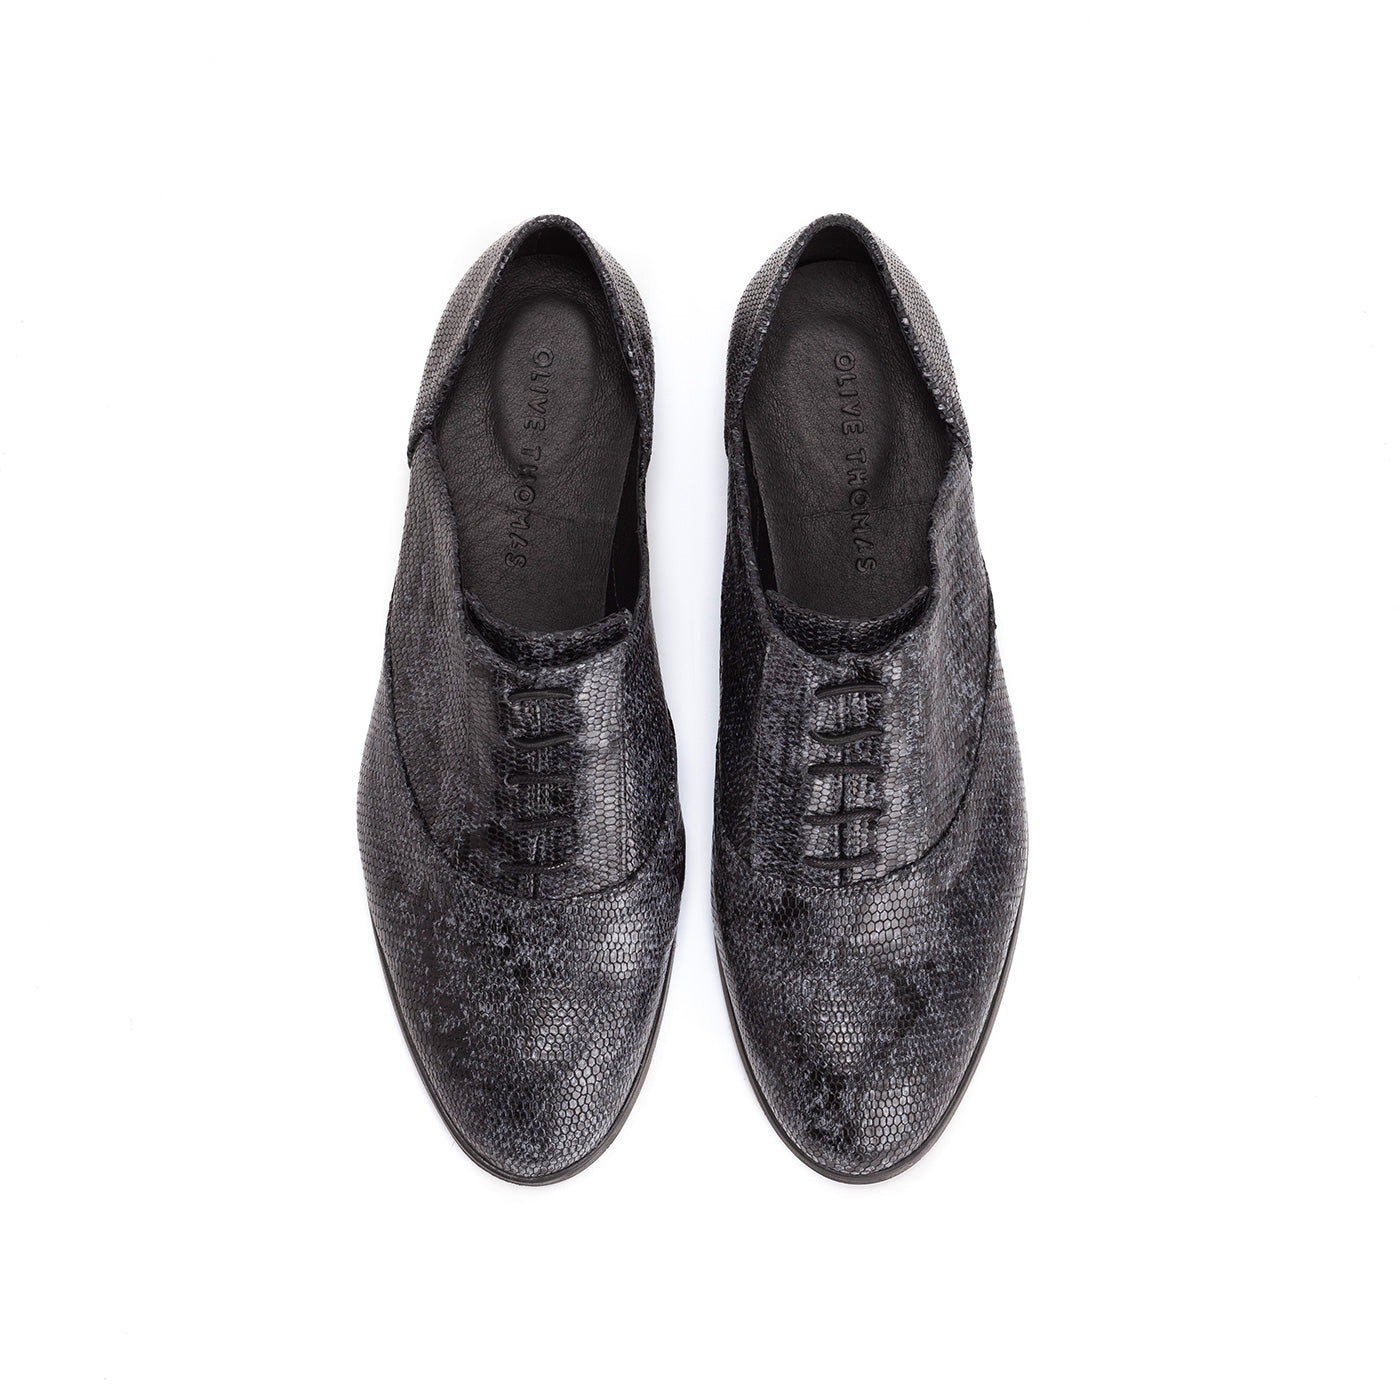 Juno - Leather Oxfords